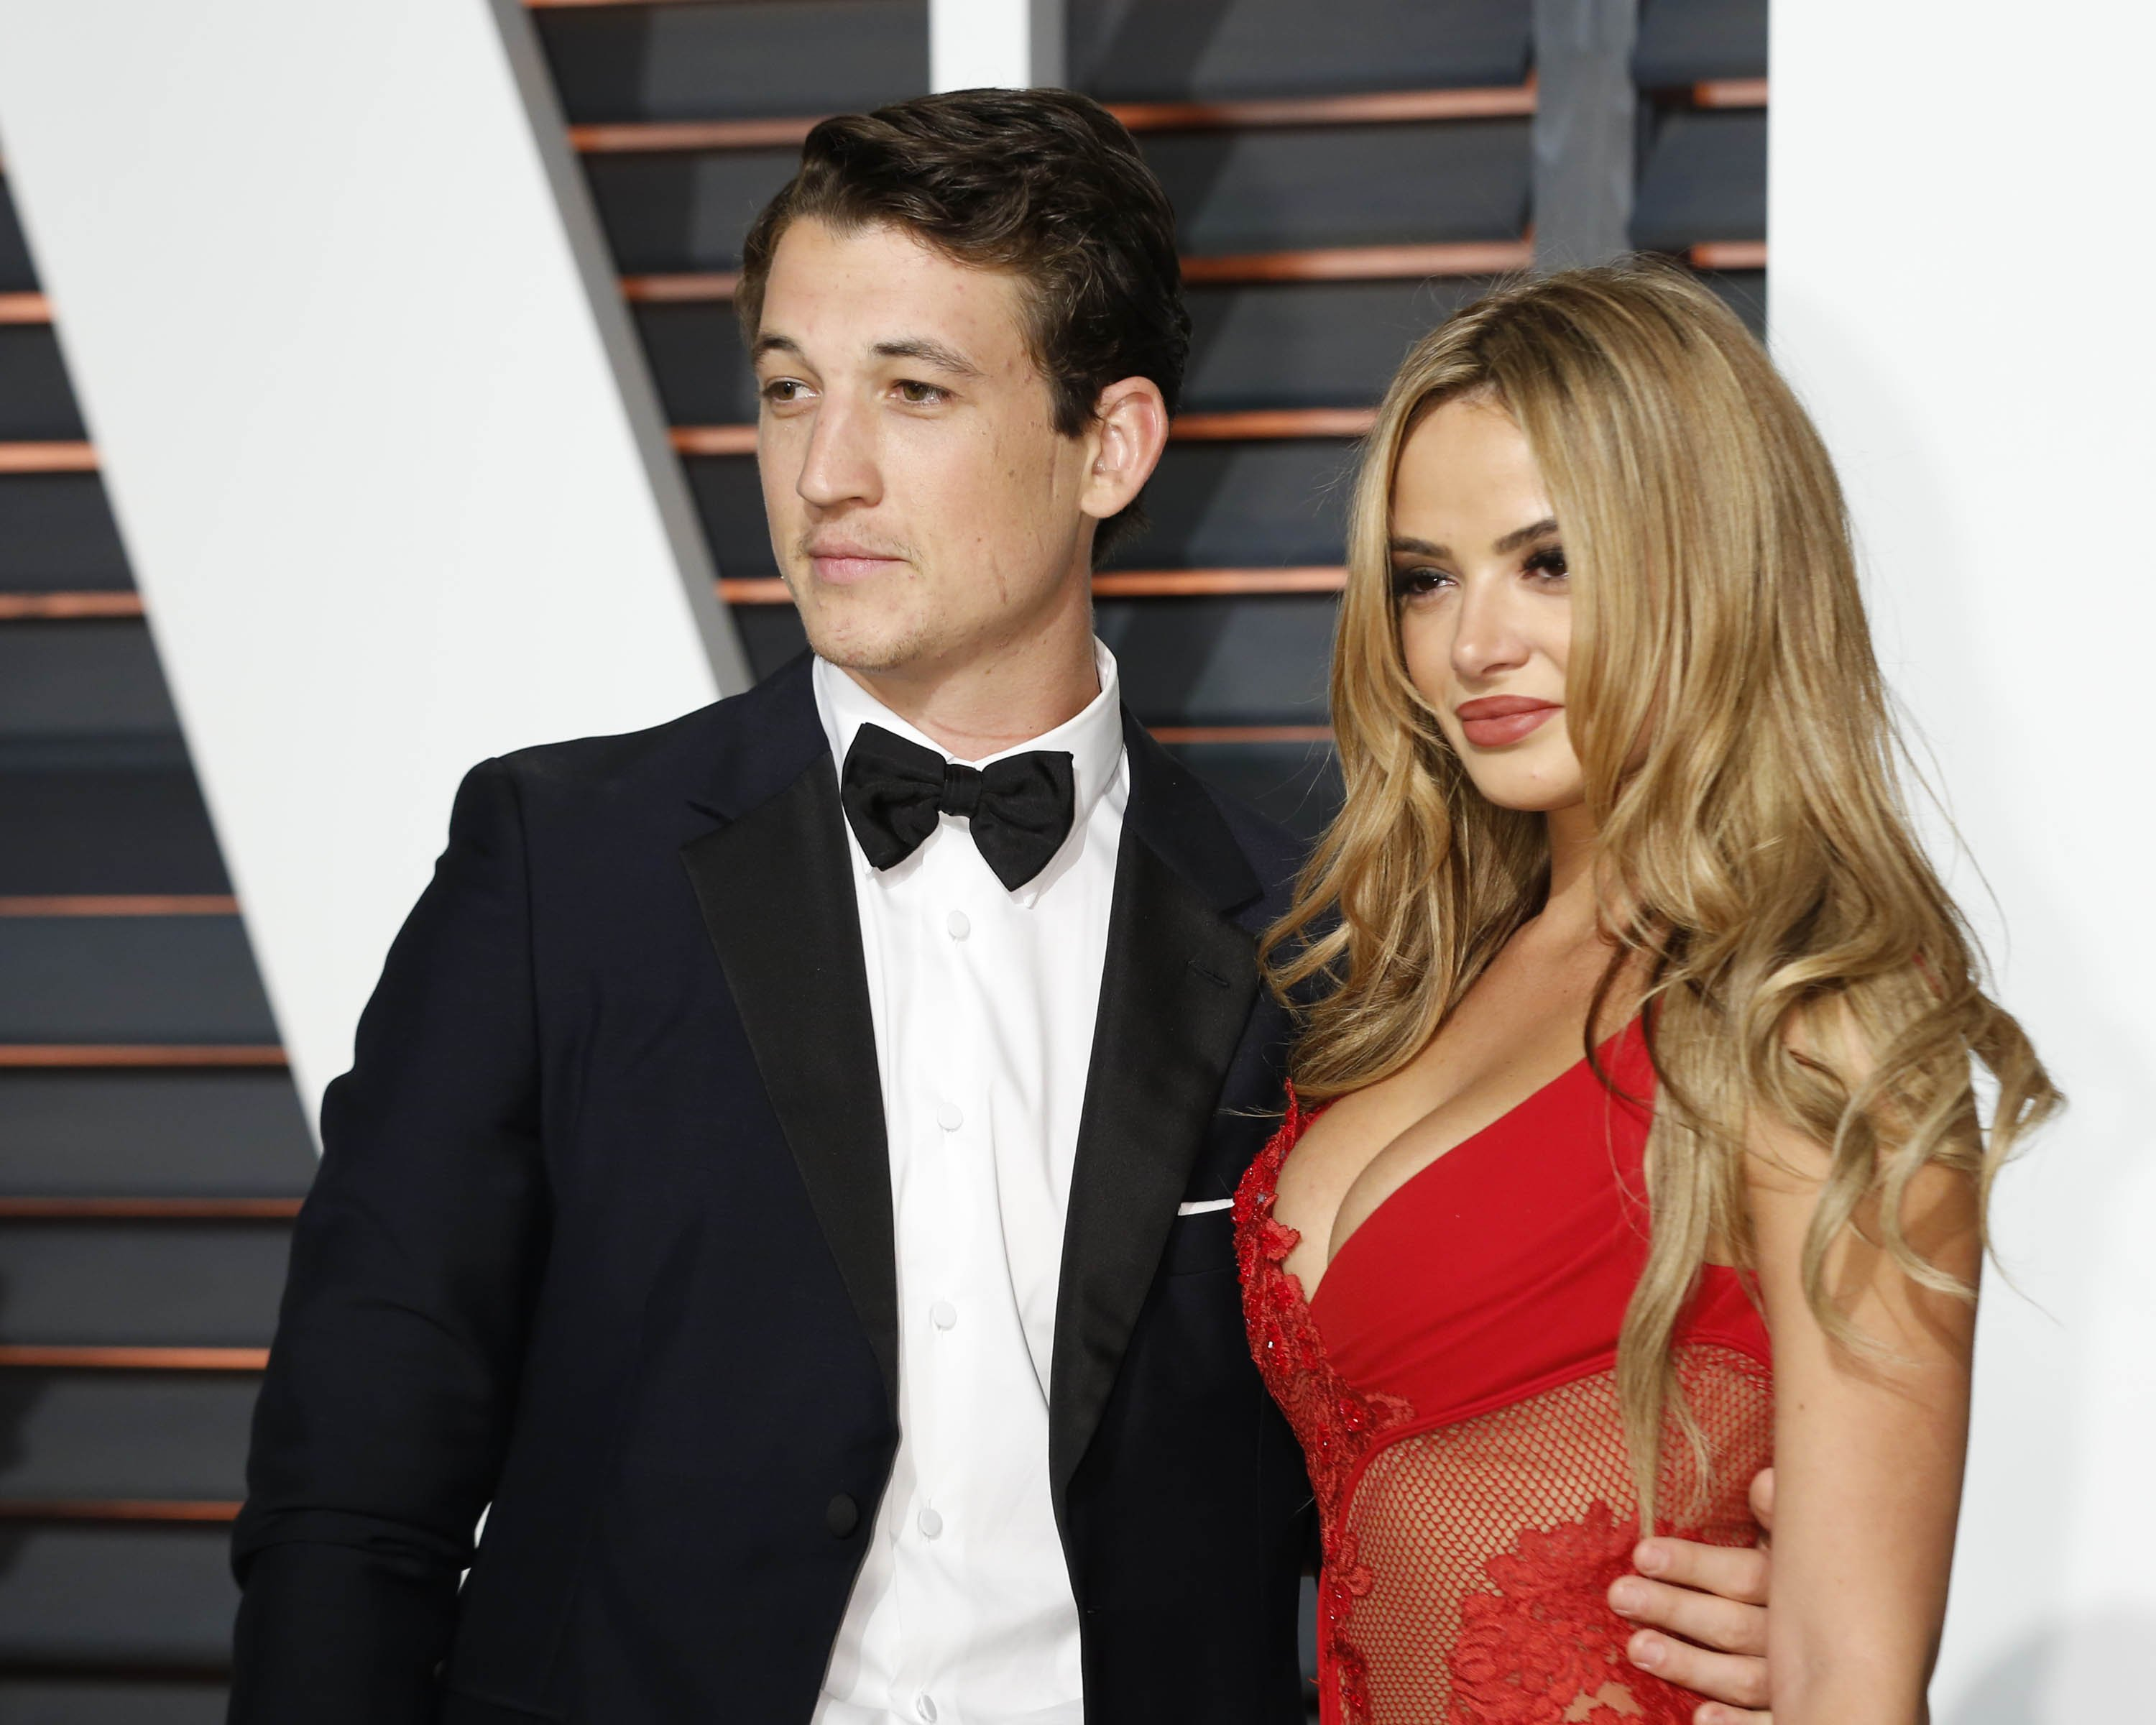 Miles Teller and Keleigh Sperry at the Vanity Fair Oscar Party 2015 at the Wallis Annenberg Center for the Performing Arts on February 22, 2015 in Beverly Hills, California | Photo: Shutterstock